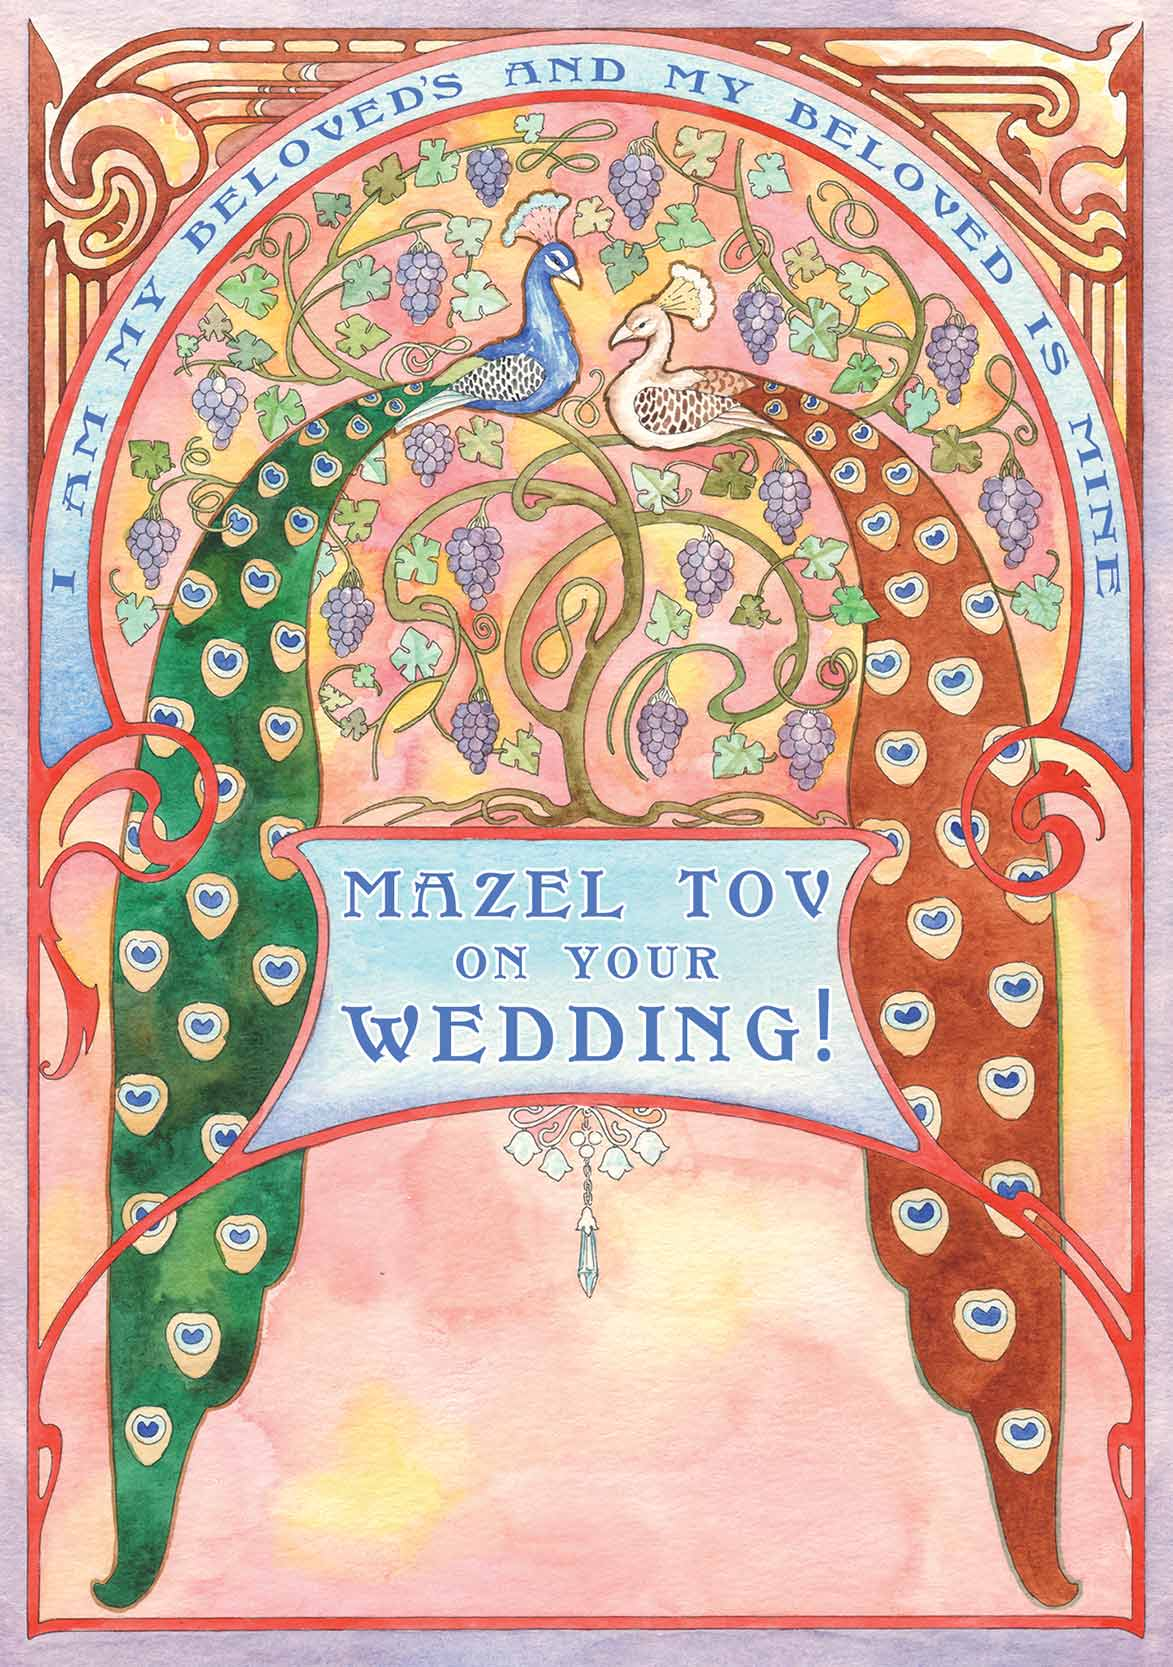 WD632 Peacocks Jewish Wedding Card by Mickie Caspi